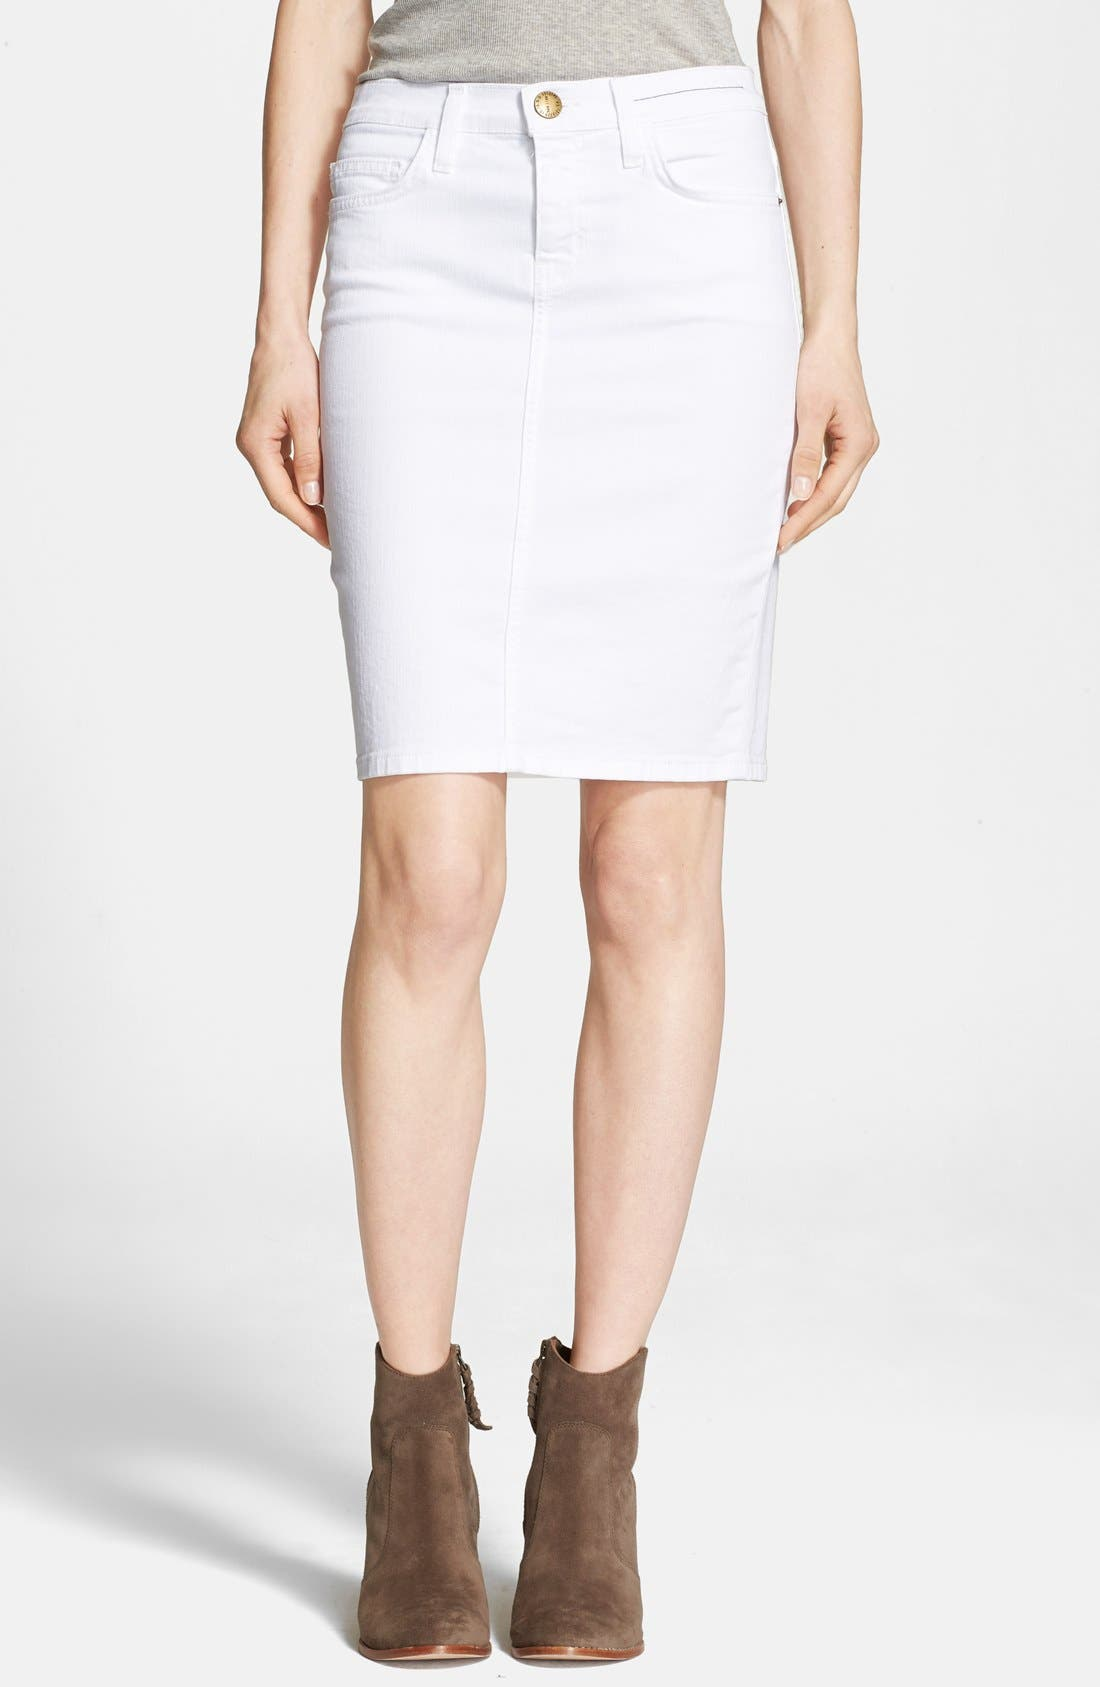 Alternate Image 1 Selected - Current/Elliott 'The Stiletto' Denim Pencil Skirt